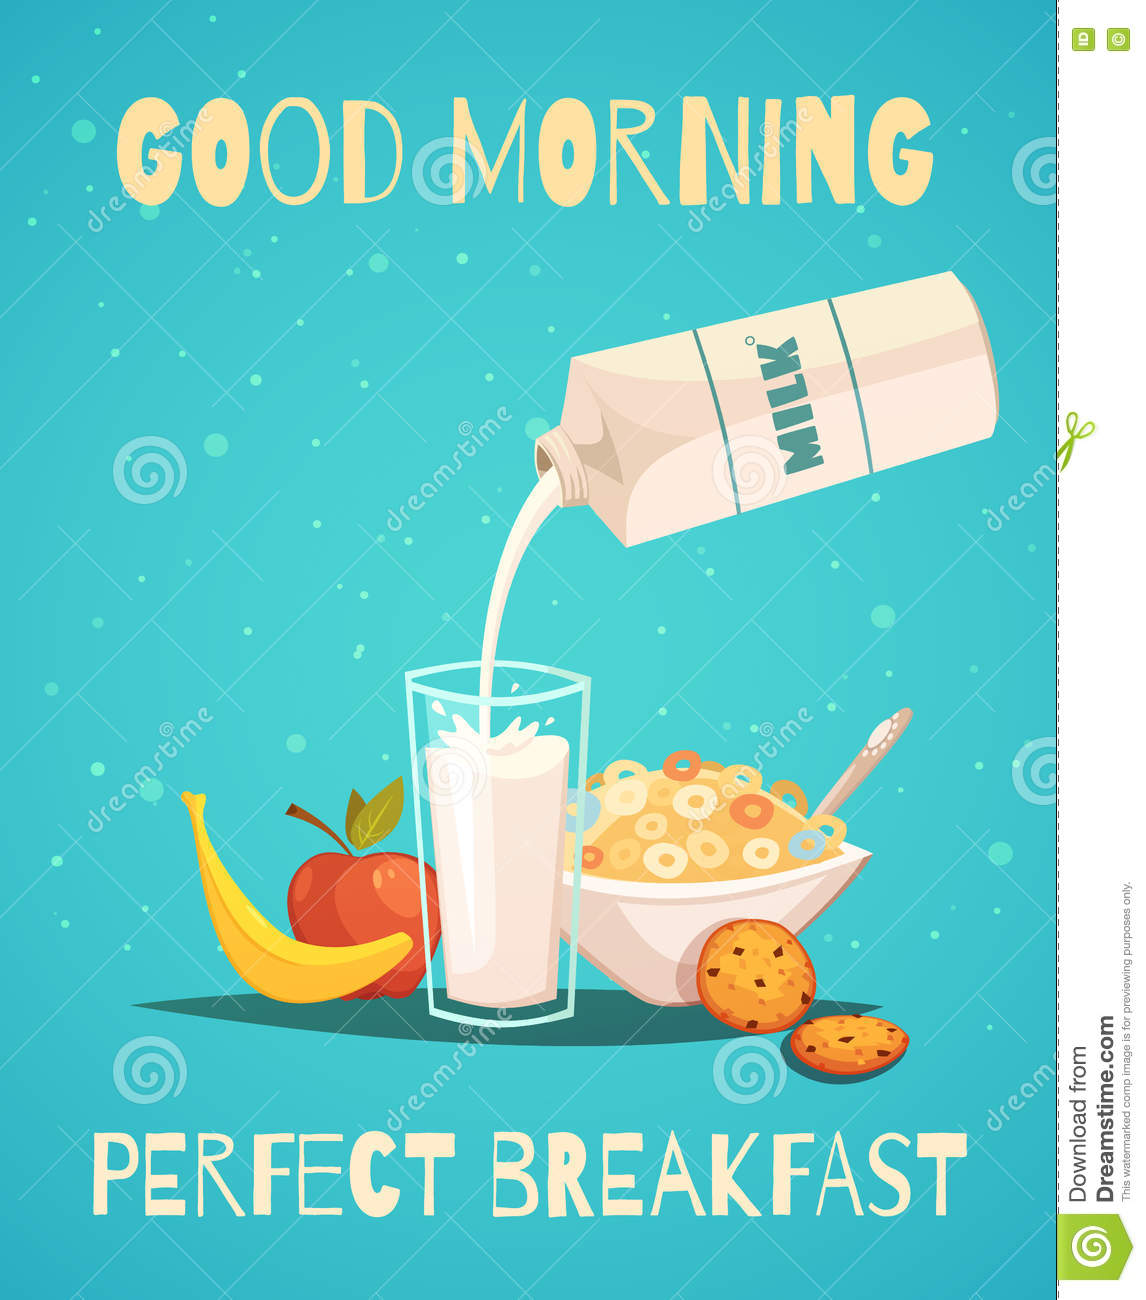 Breakfast Poster With Good Morning Wishing Stock Vector